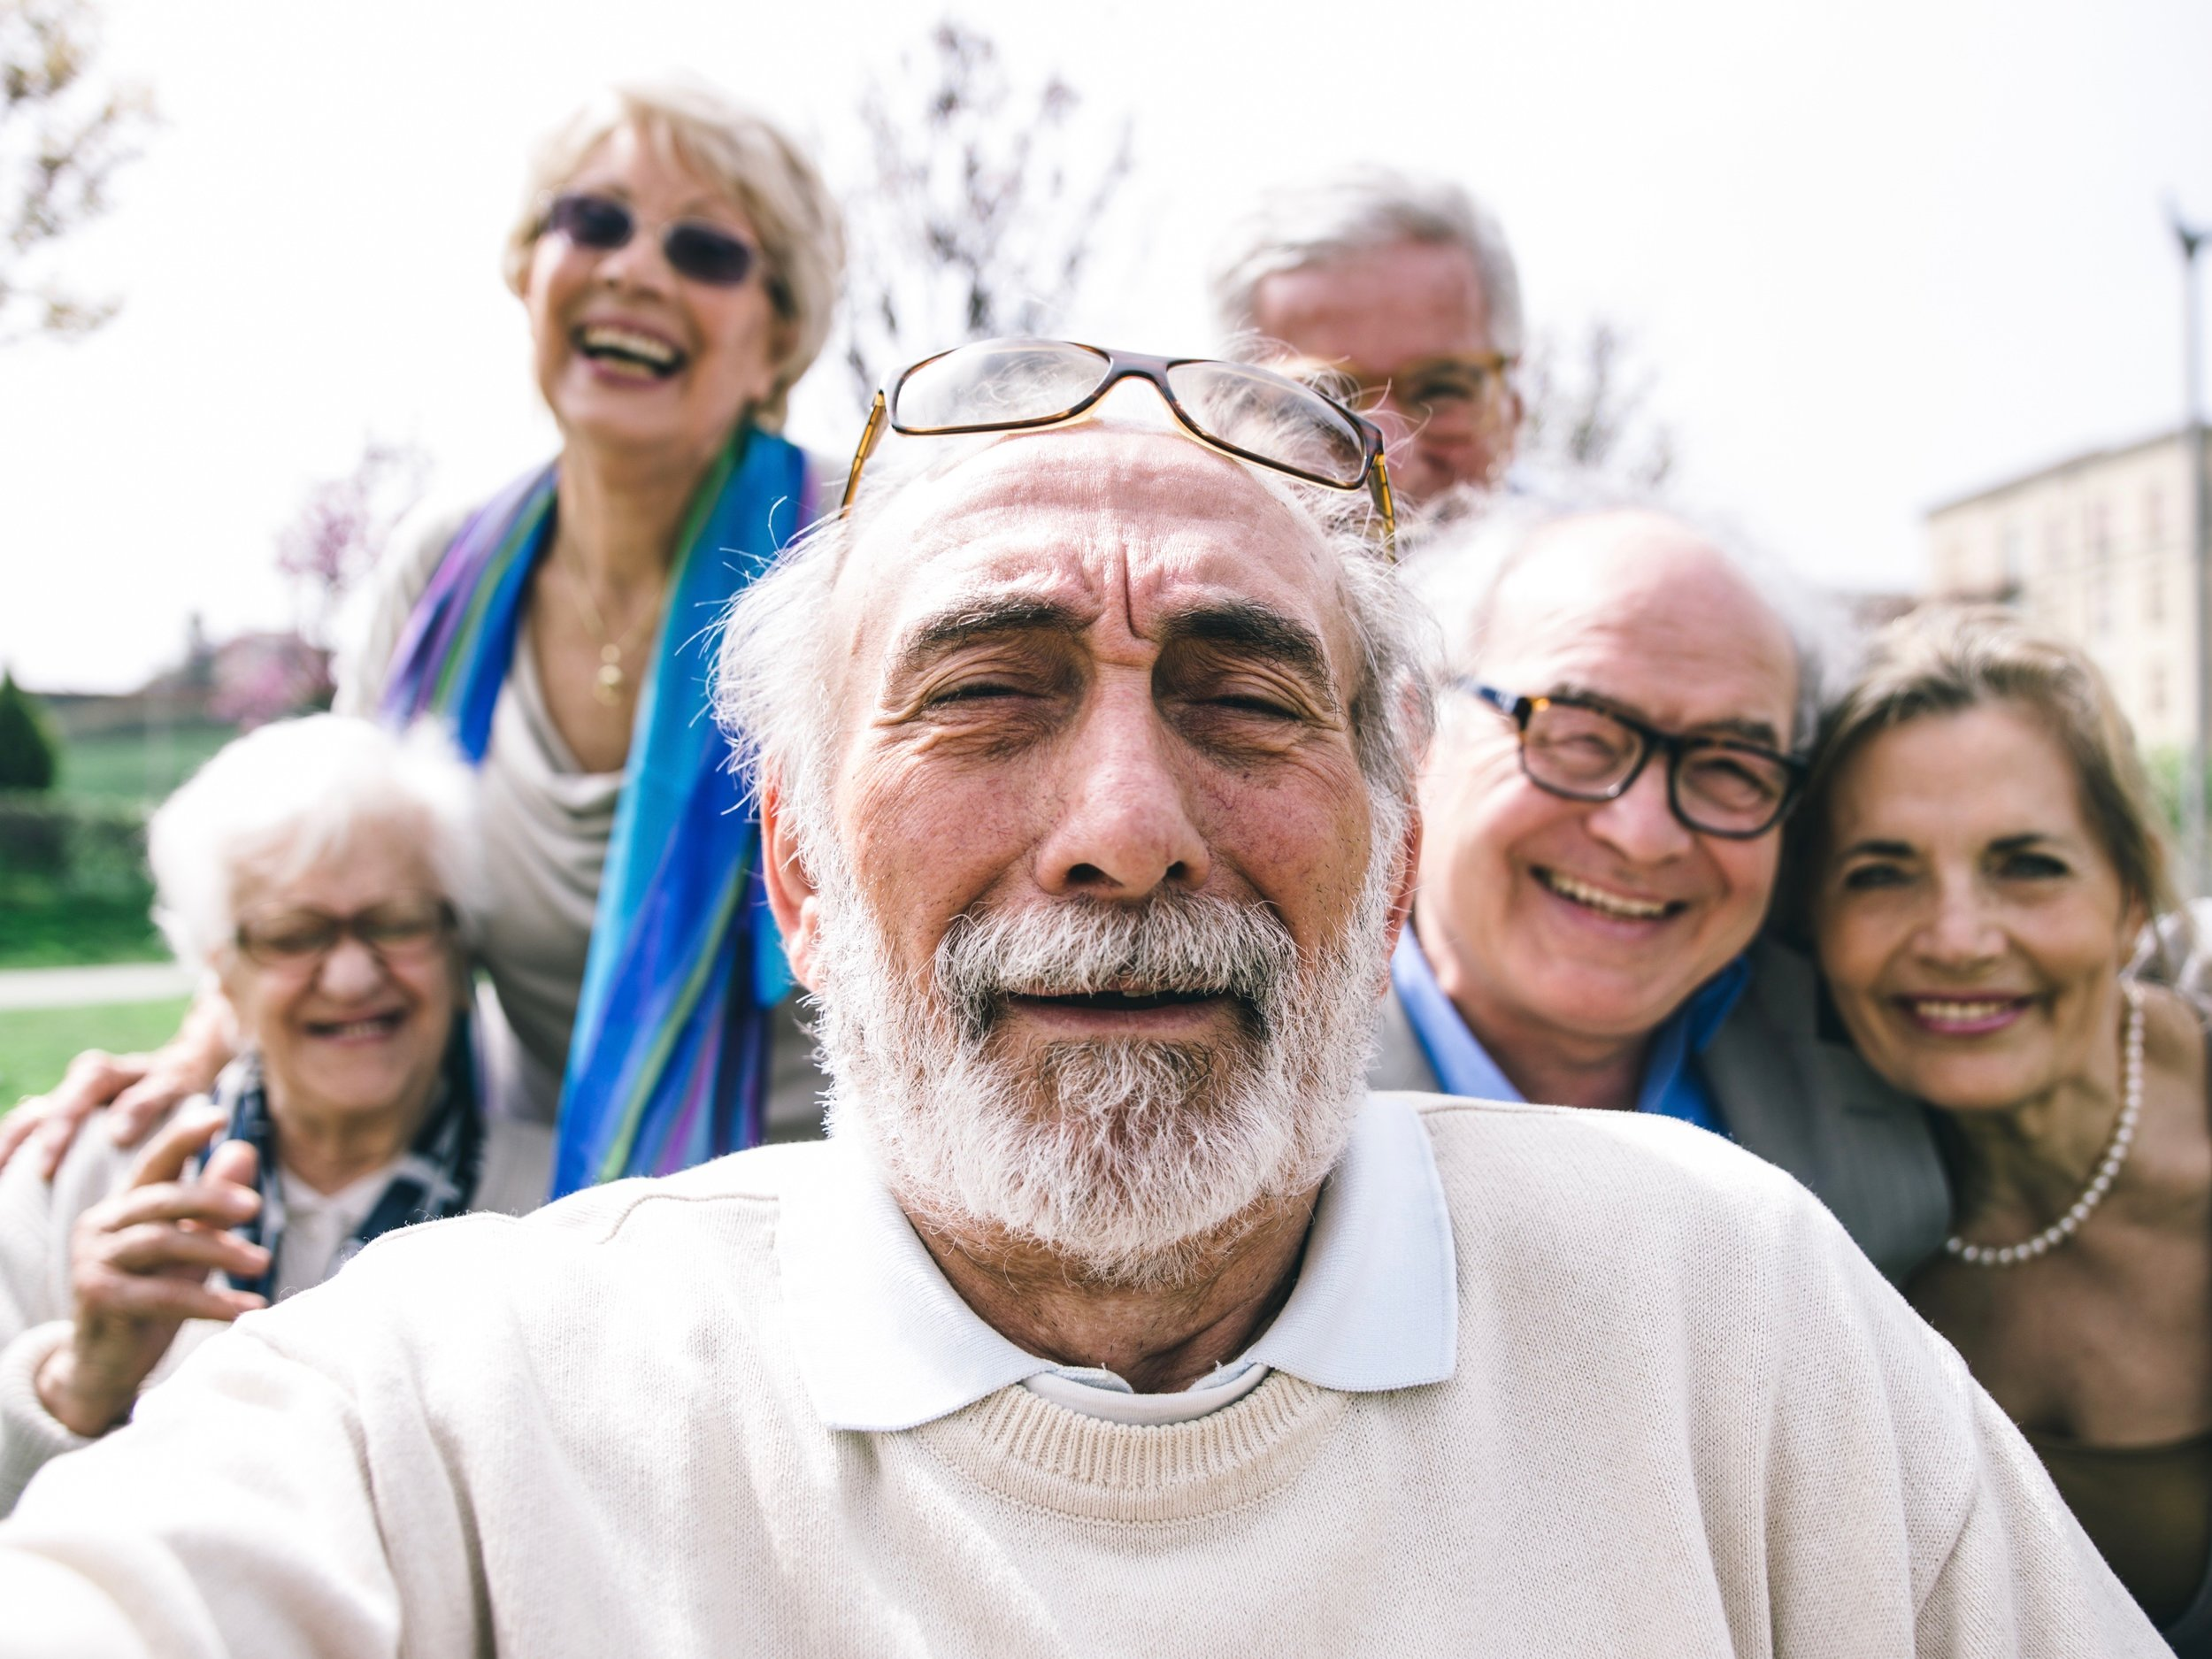 Illinois seniors could soon face a tax on their retirement income. (Shutterstock)